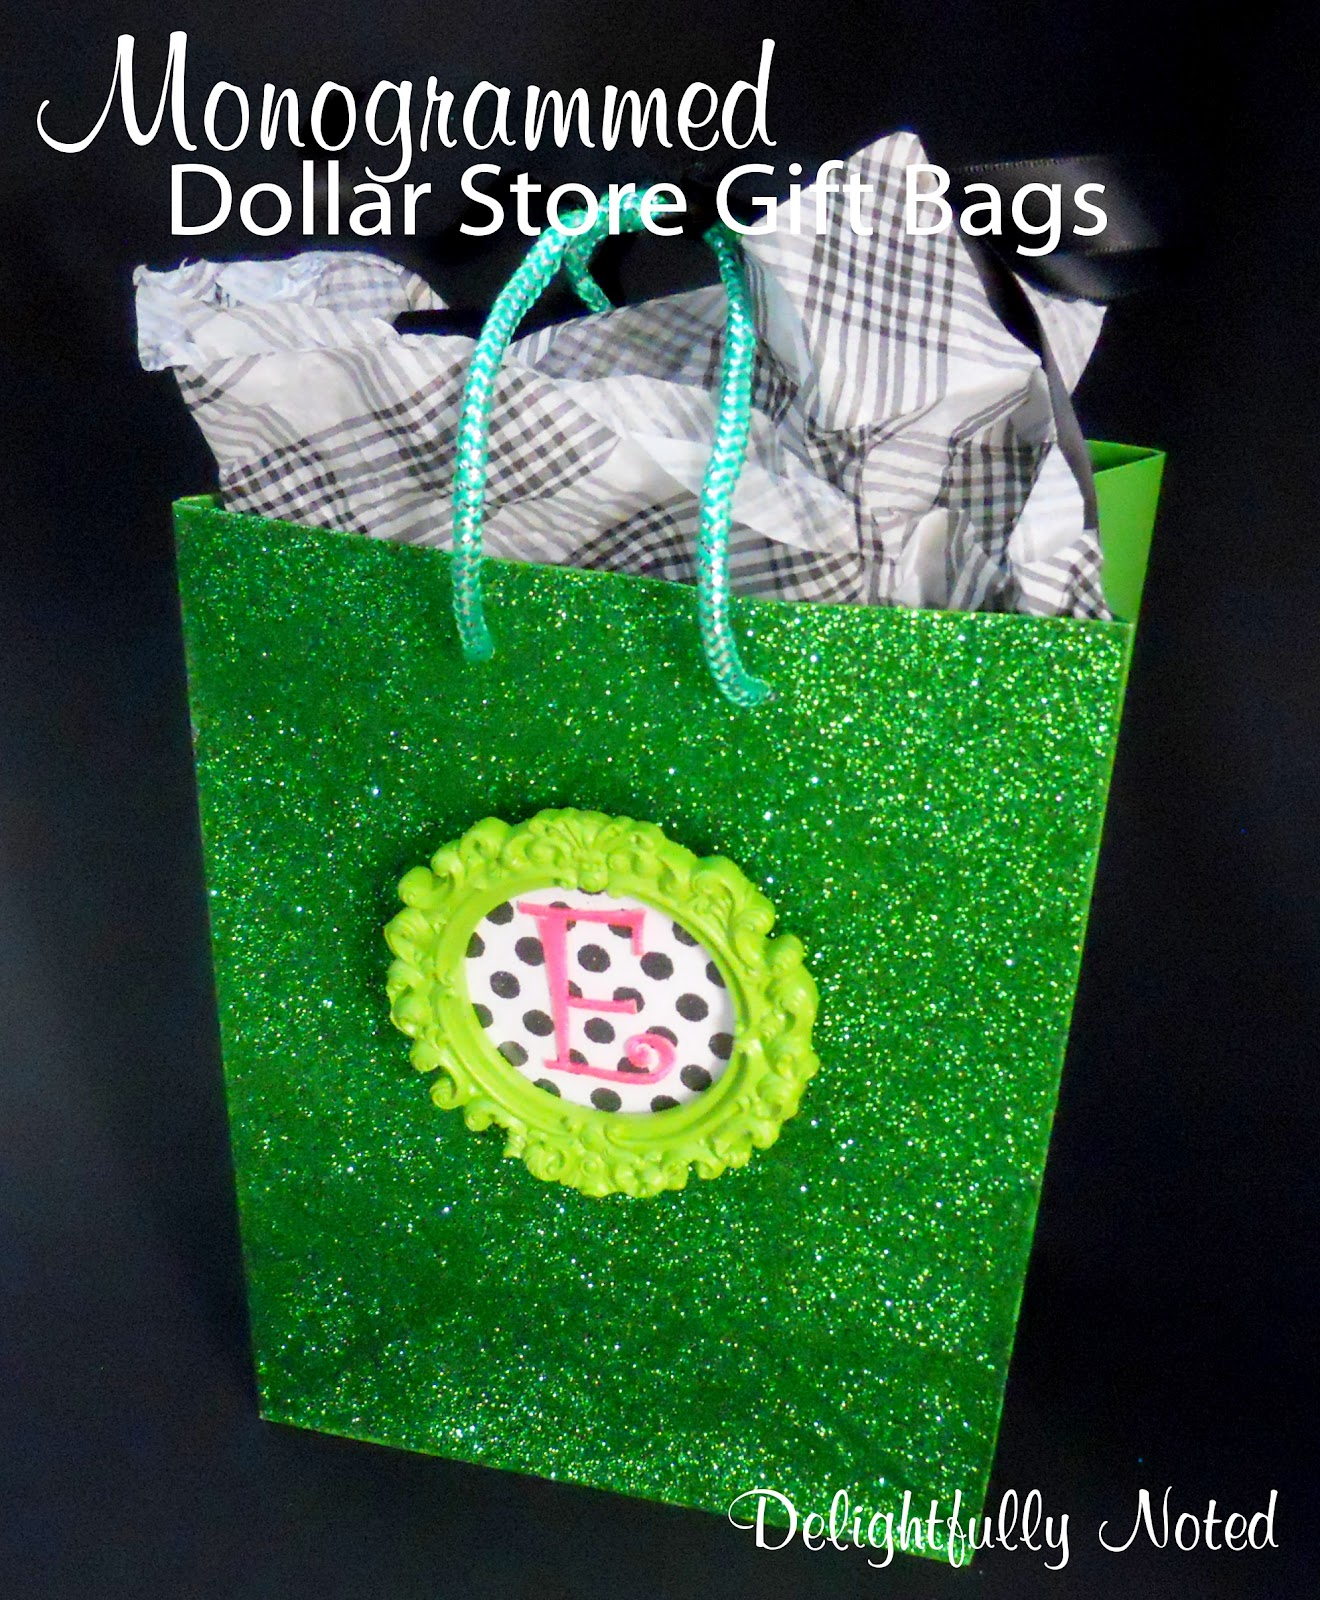 decorating-dollar-store-gift-bags